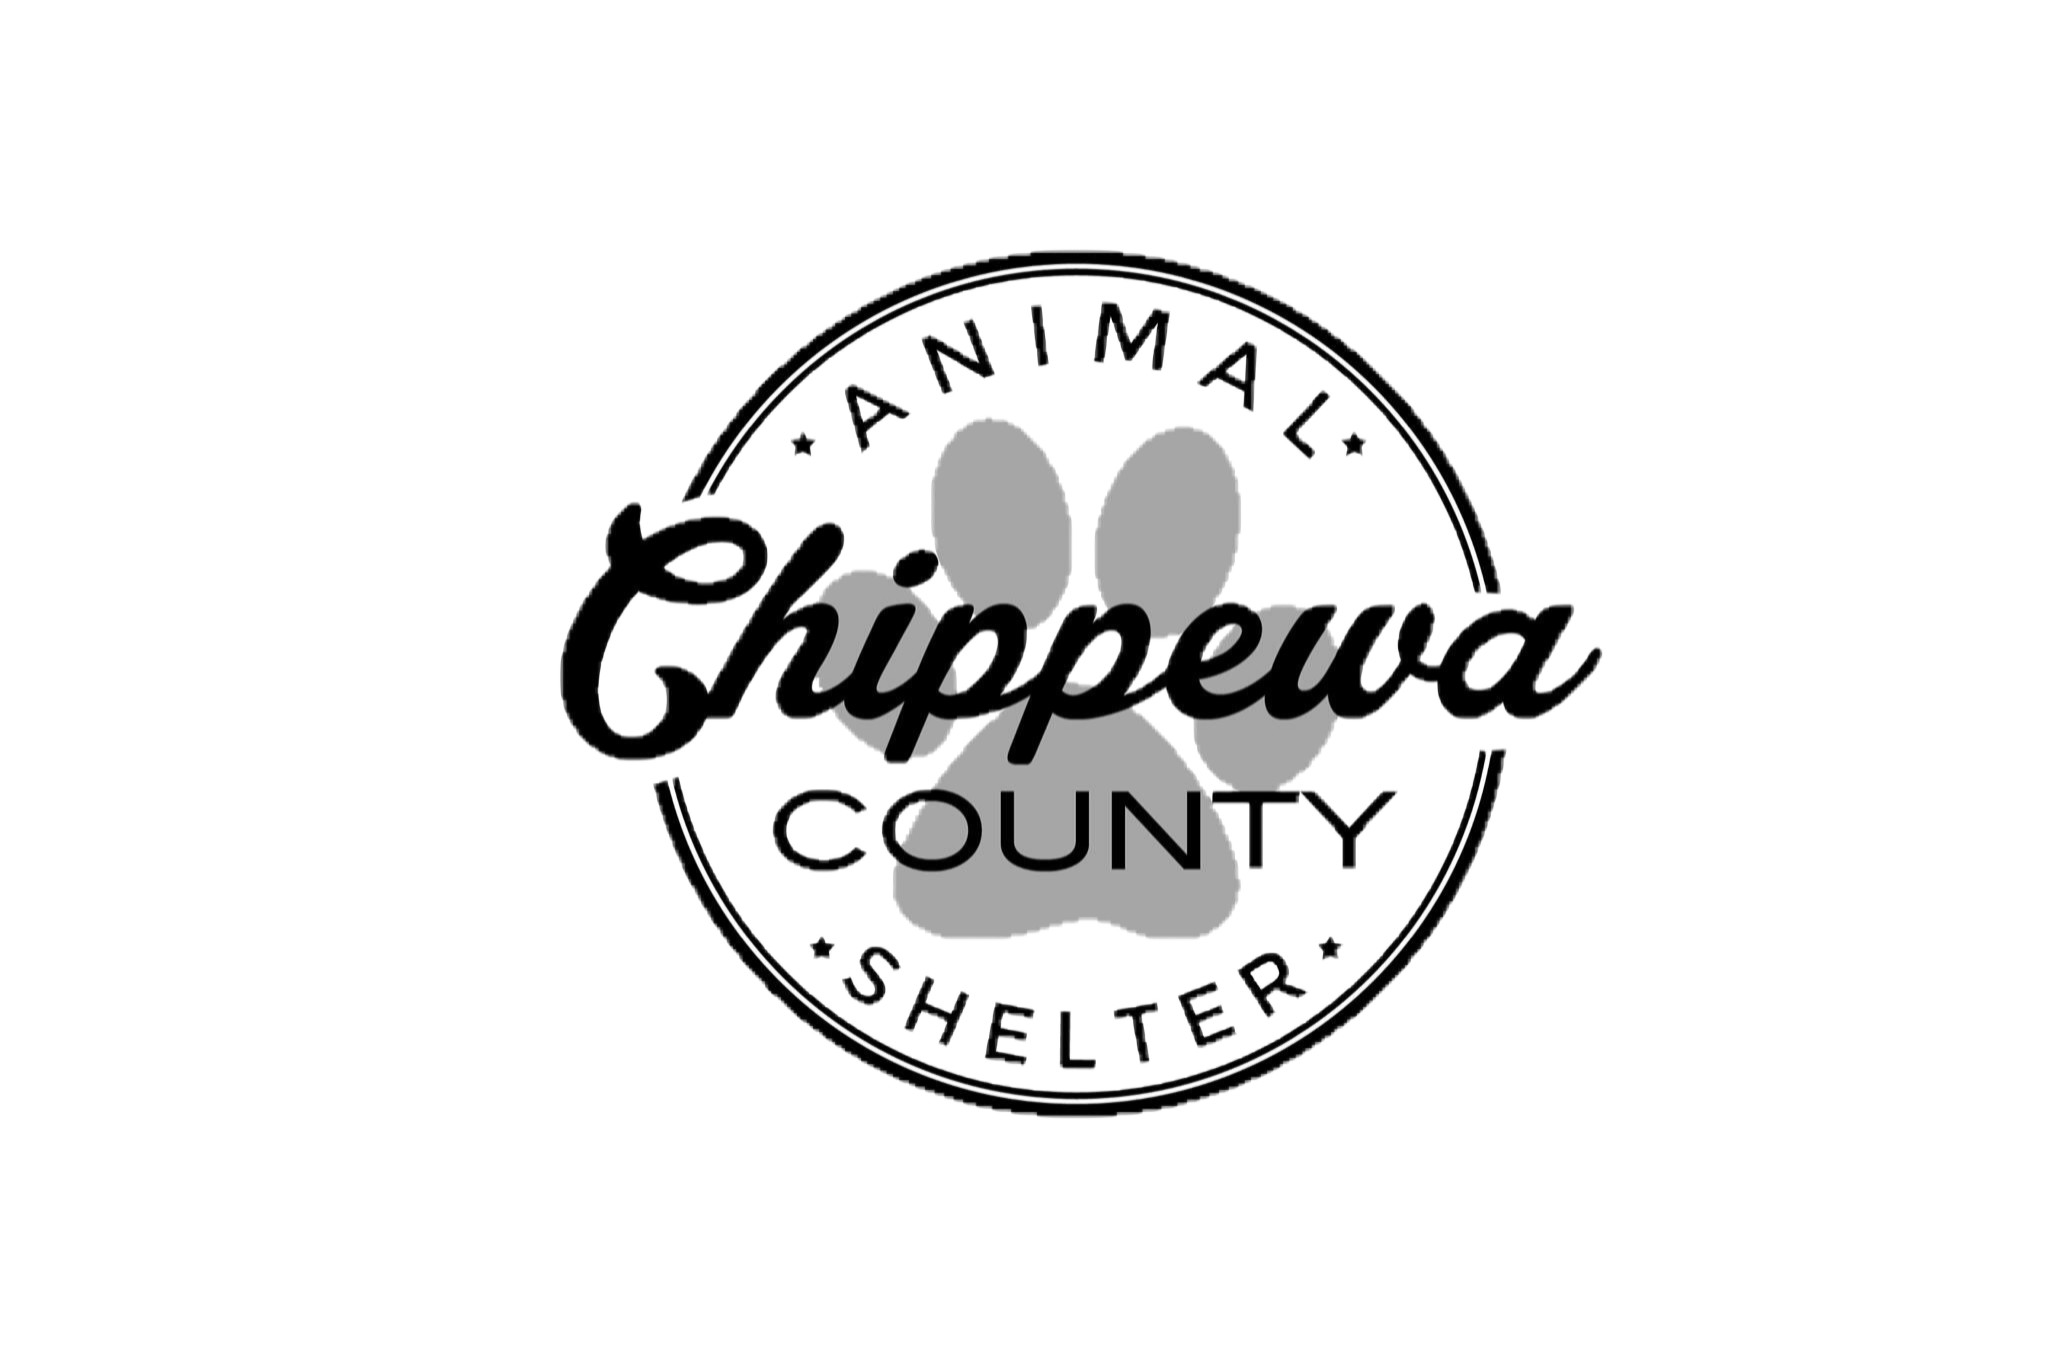 Chippewa County Animal Control Shelter